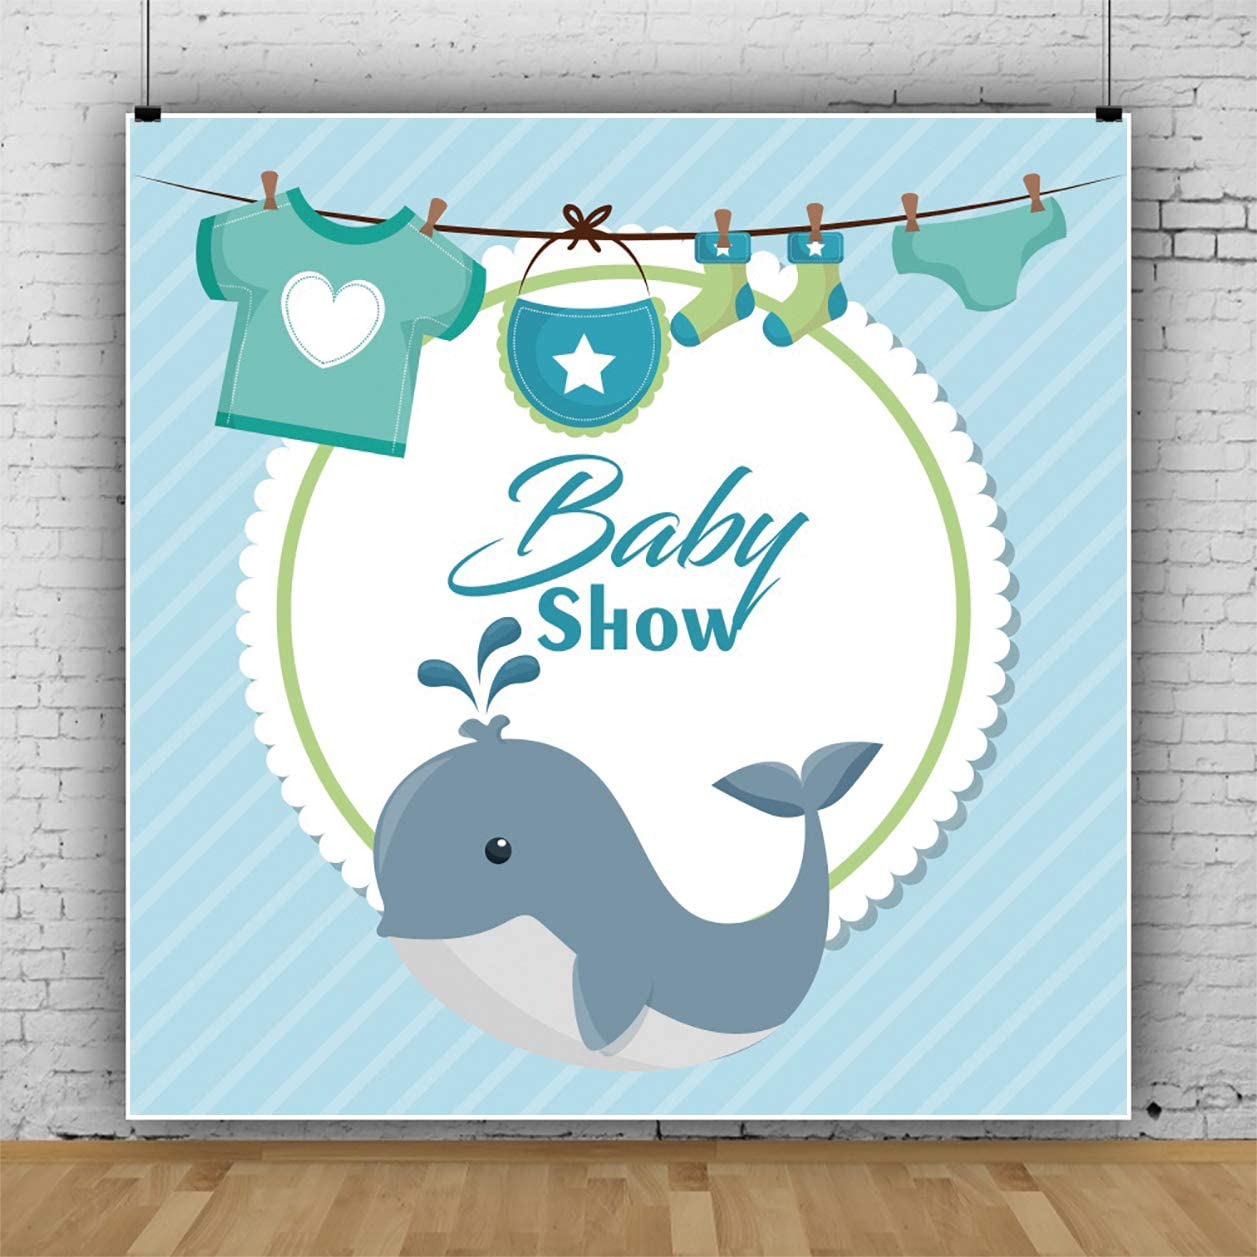 YEELE Cute Whale Backdrop Boy Baby Shower Photography Background Little Prince Photo Booth Banner Infant New Birth Baby Portrait Cake Smash Photoshoot Props Wallpaper 10x10ft